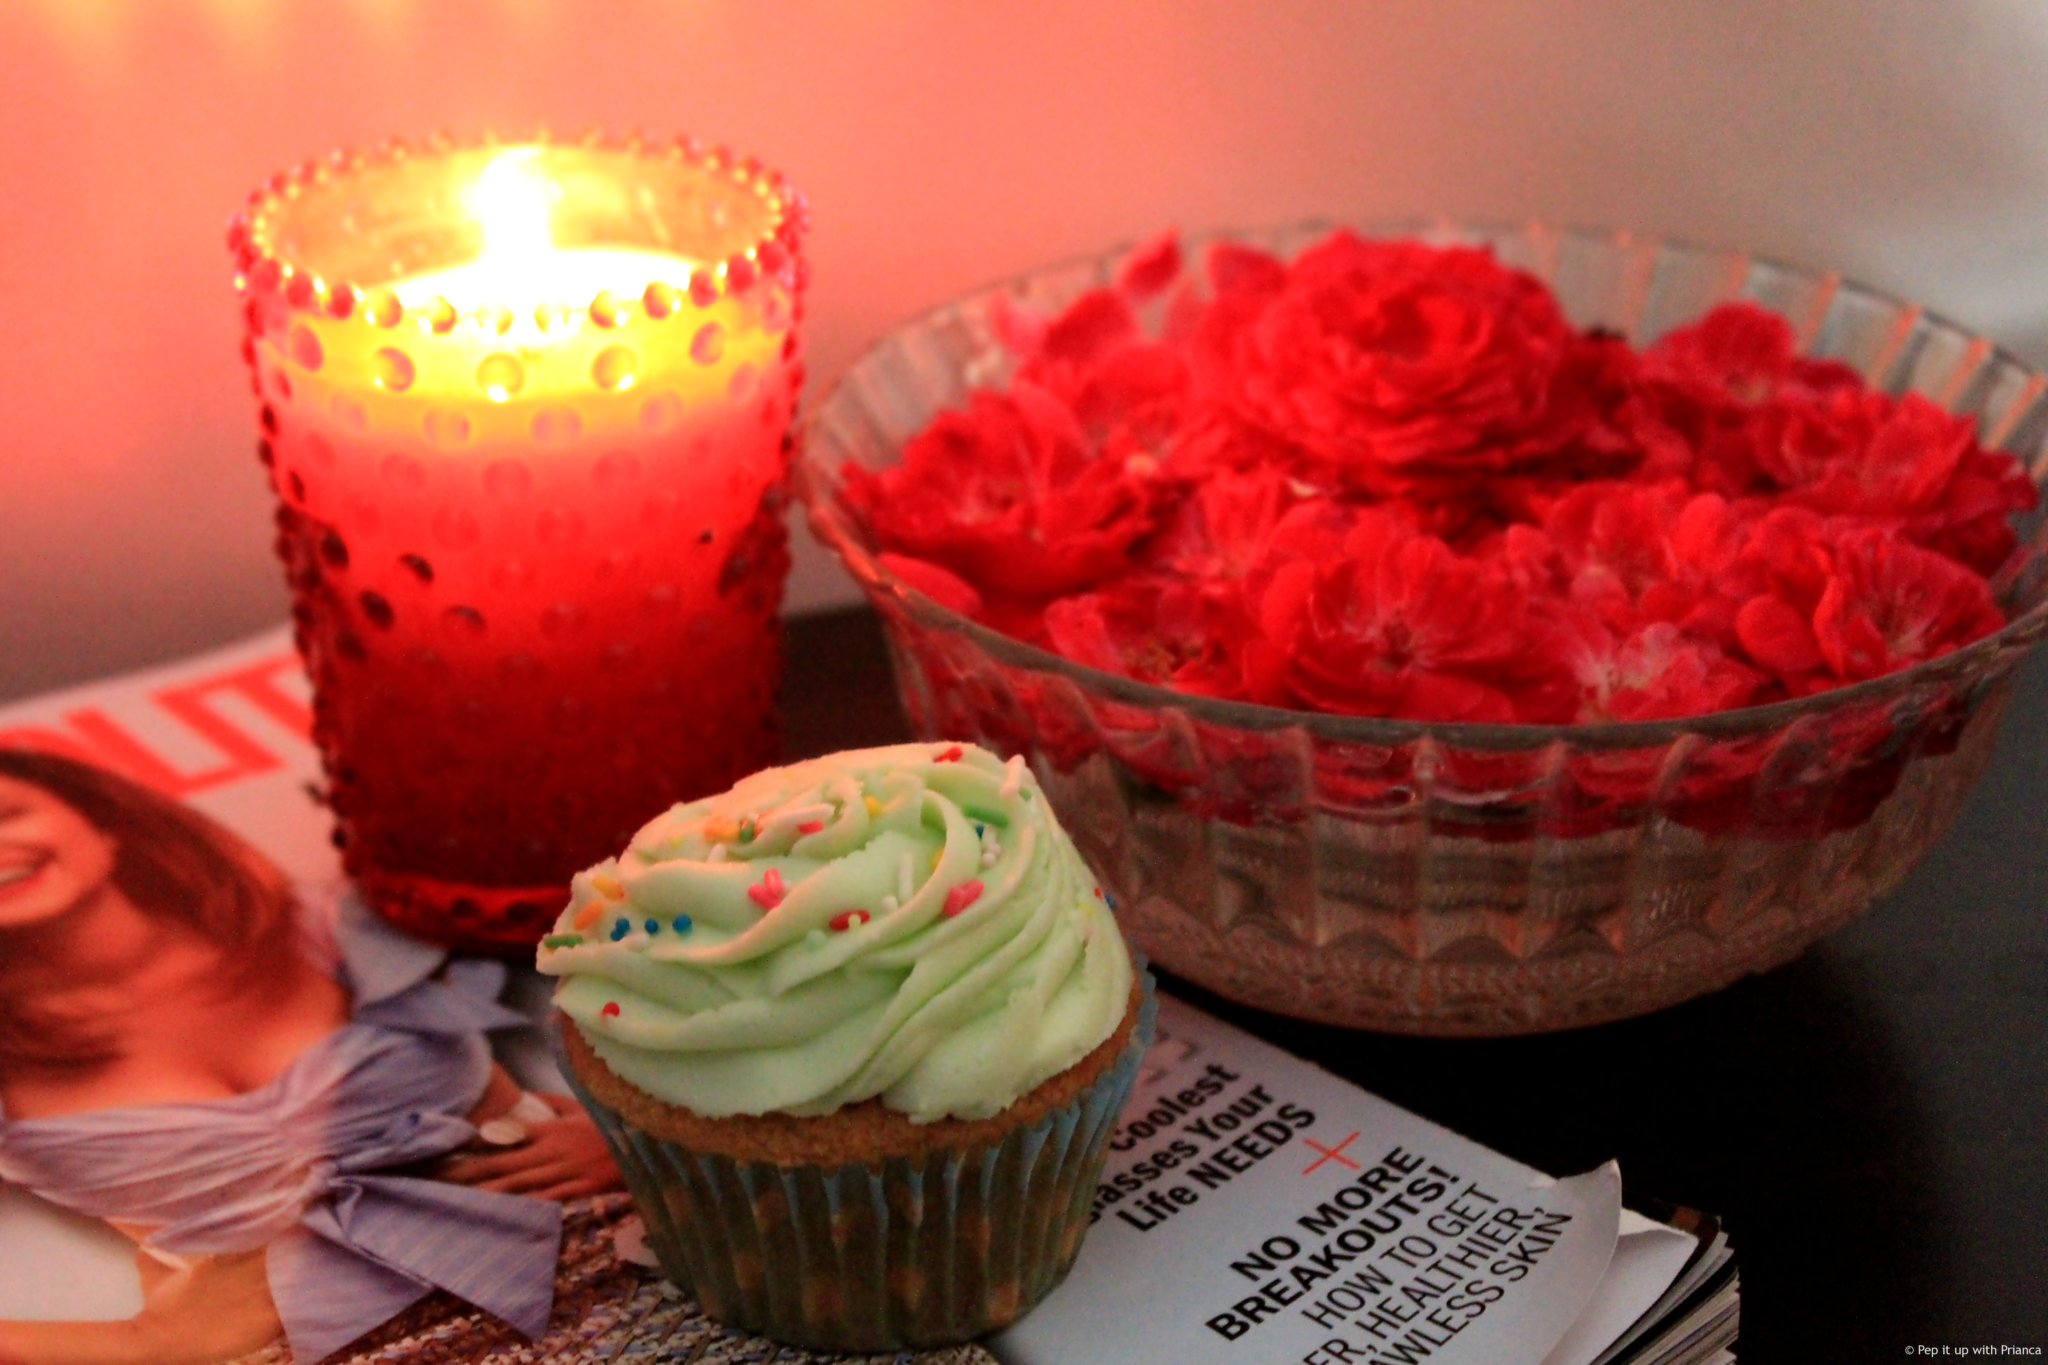 cupcake for pep it up with prianca - Learn the Recipe to Happiness - Bake Cute & Delicious Cupcakes for your Loved Ones